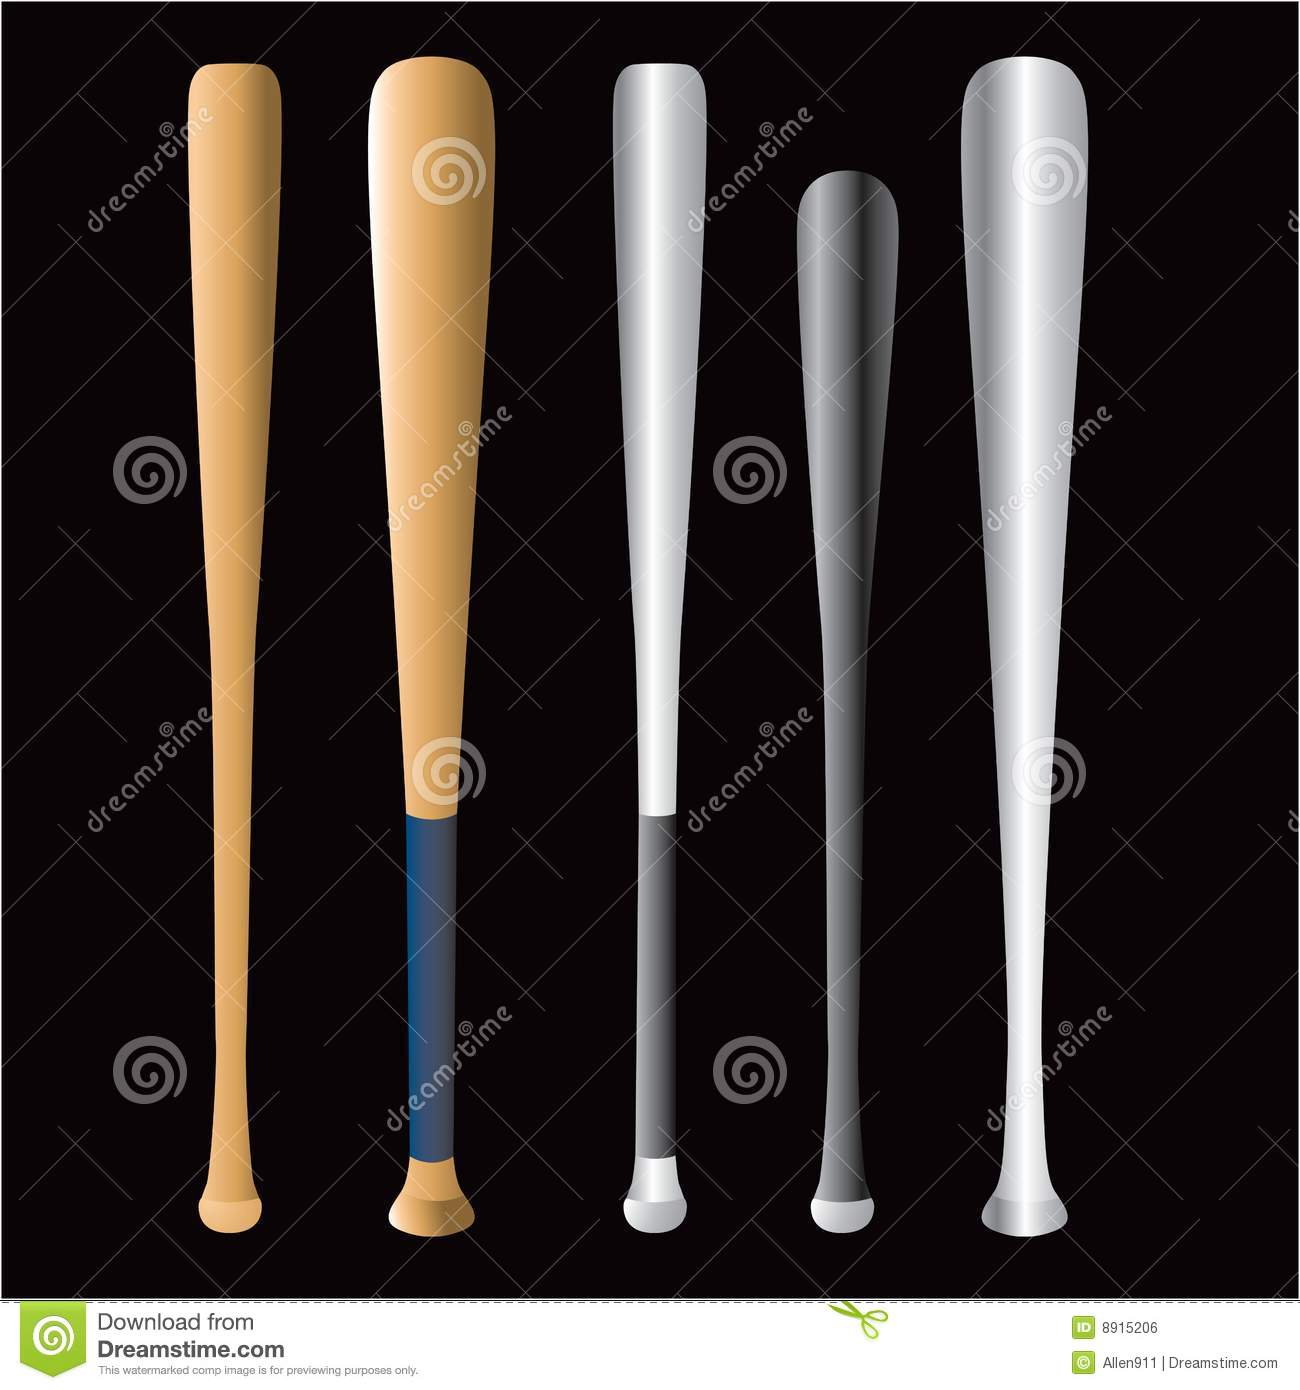 5488f8d9036 Illustration of five different baseball bats isolated on black background.